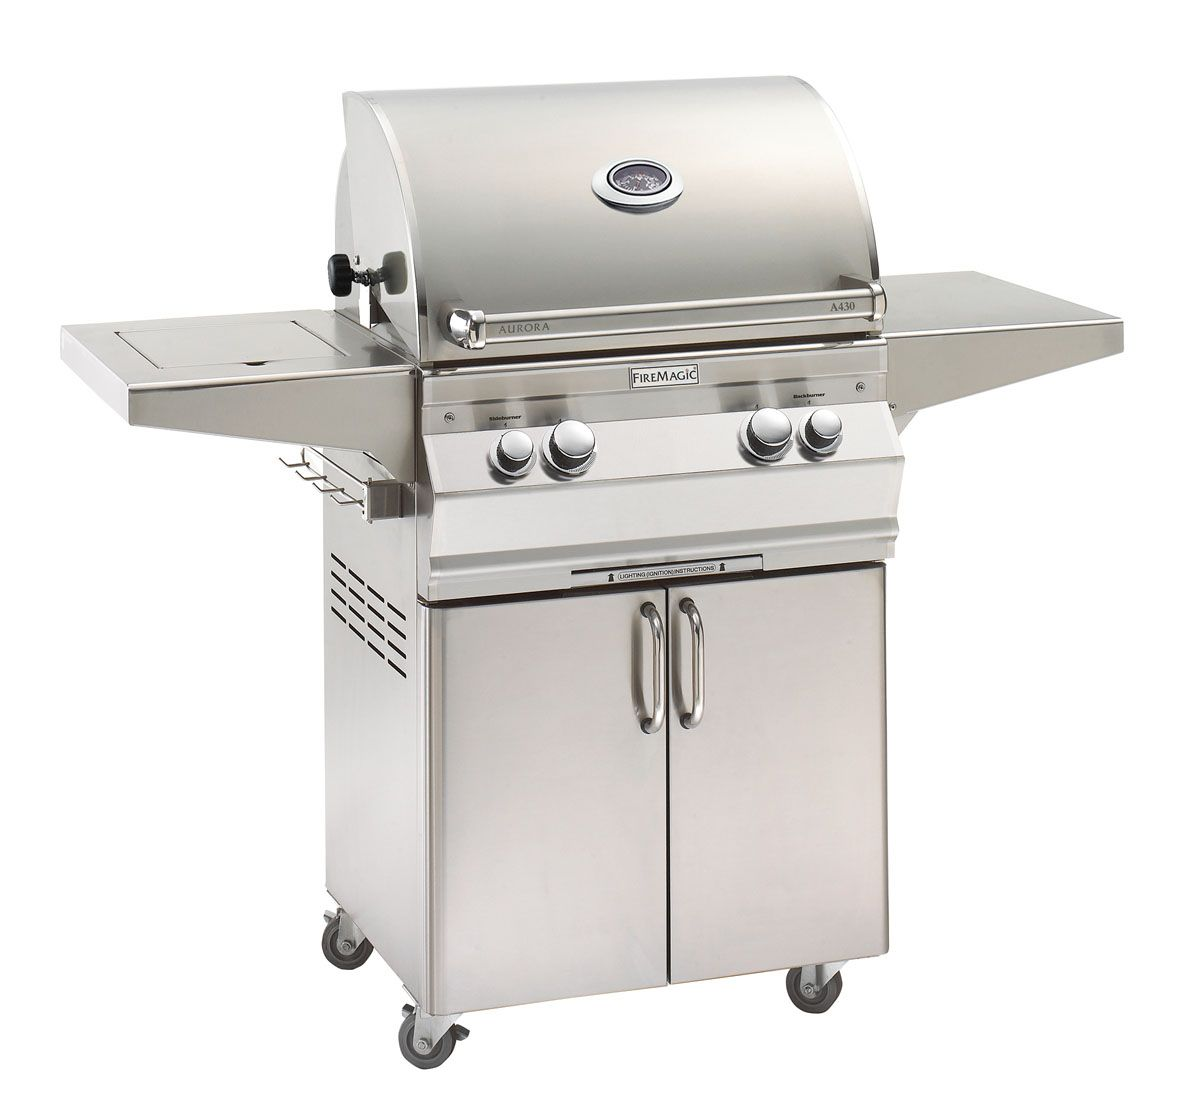 """Fire Magic A430S-8LAP-62 Aurora A430S 24"""" Freestanding Propane Gas Grill With Side Burner  One Infrared Burner Rotisserie And Analog Thermometer"""